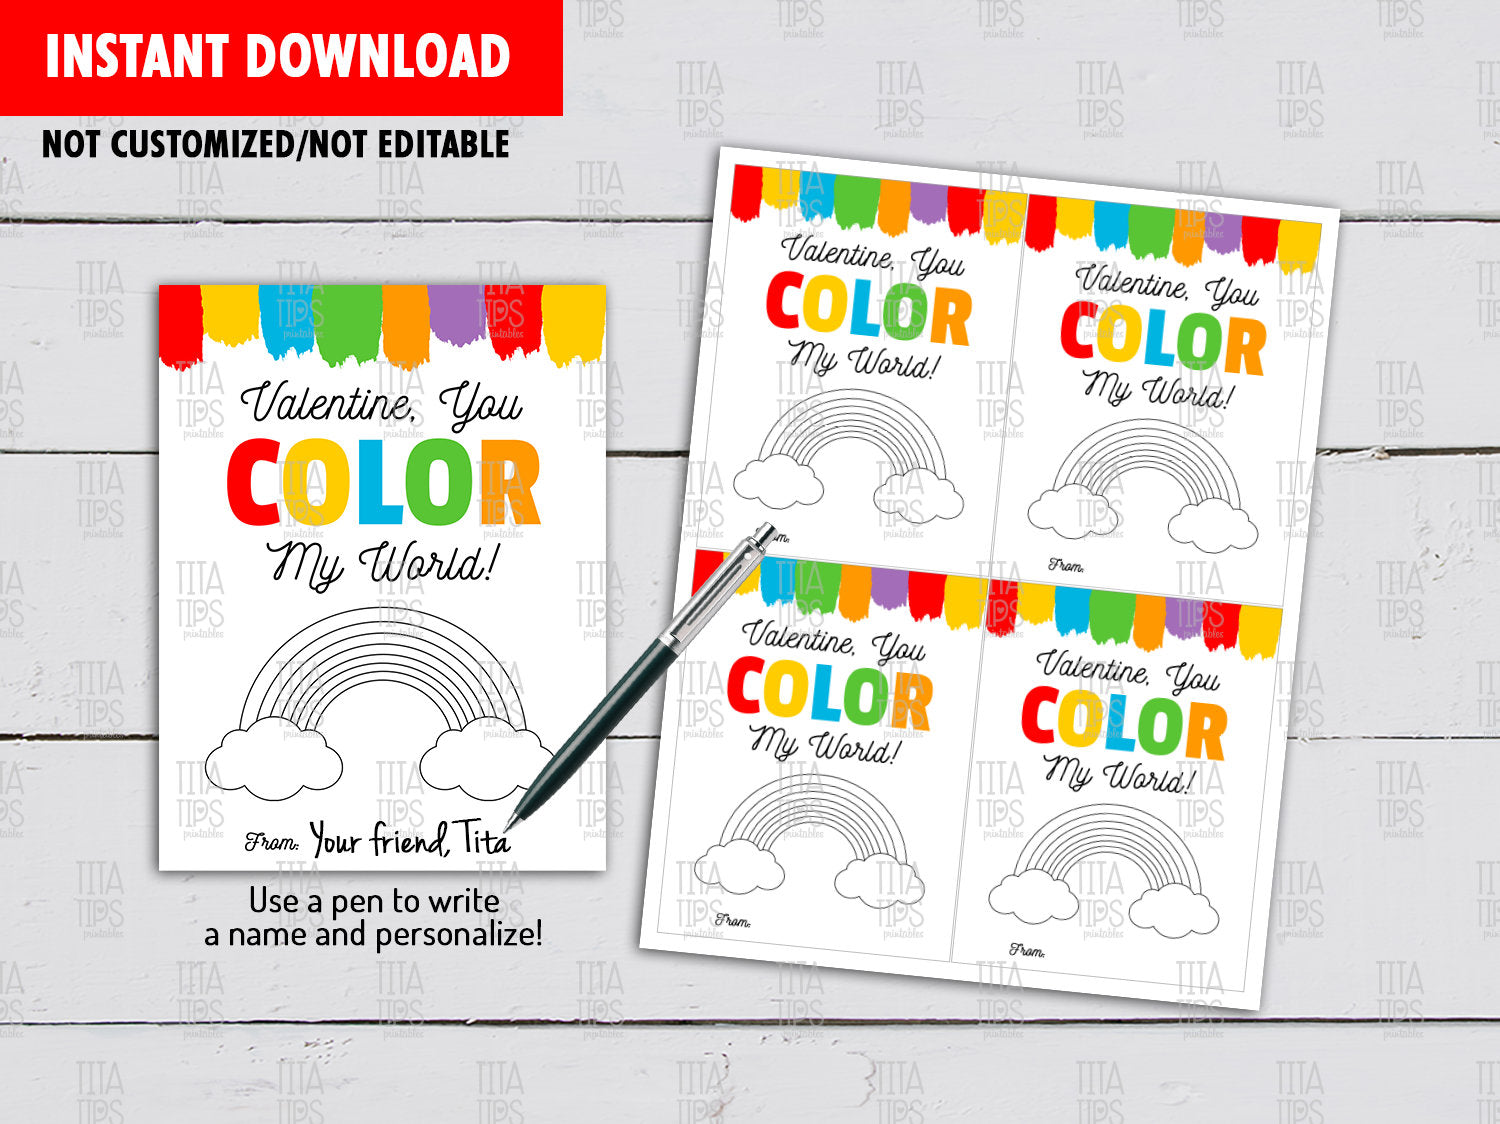 You Color My World Valentine's Day Card DIY Printable, Watercolor Paint, Non Candy, Exchange Tag, Instant Download - TitaTipsPrintables